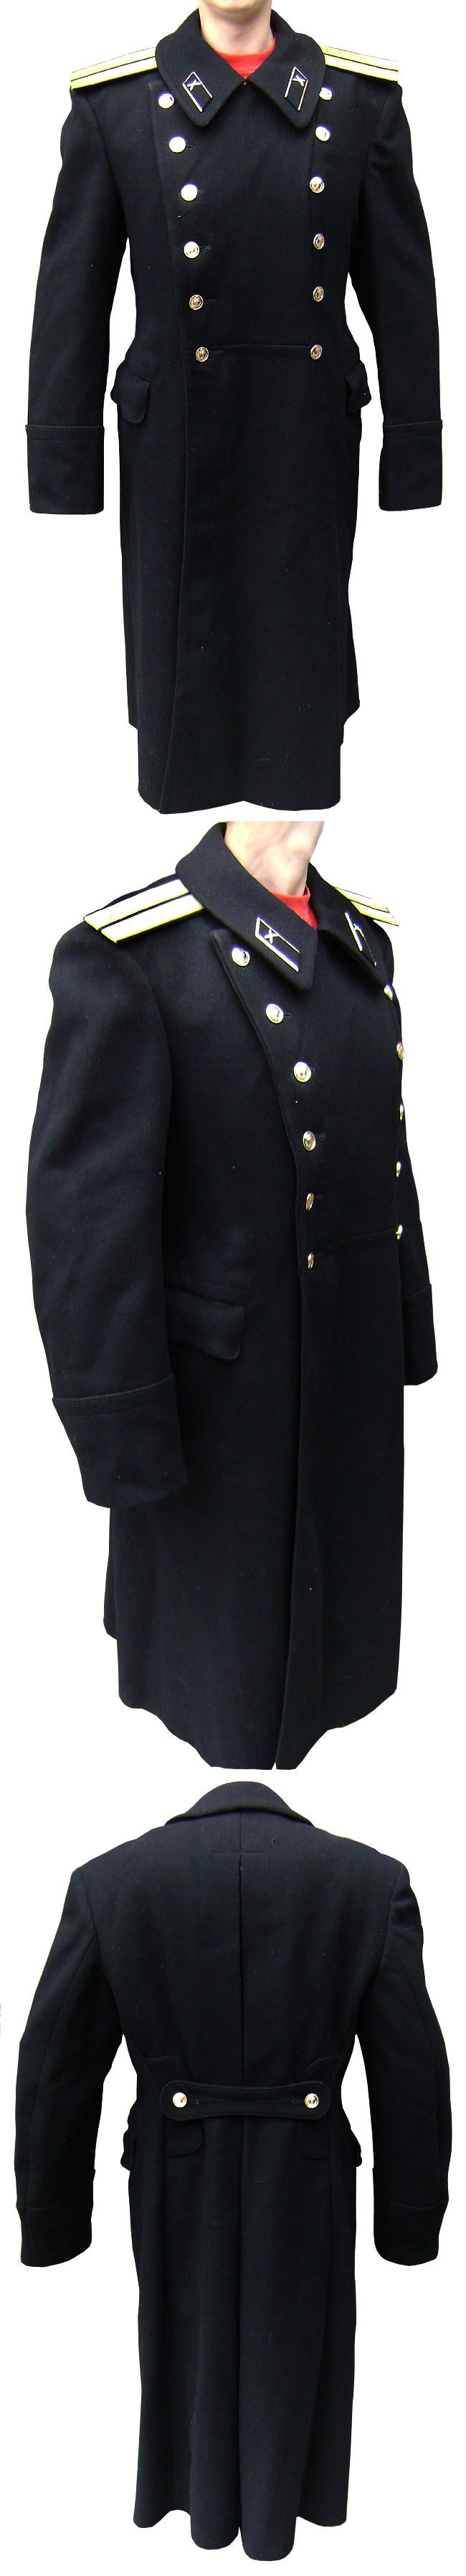 MILITARY SOVIET ARMY NAVAL OFFICER OVERCOAT